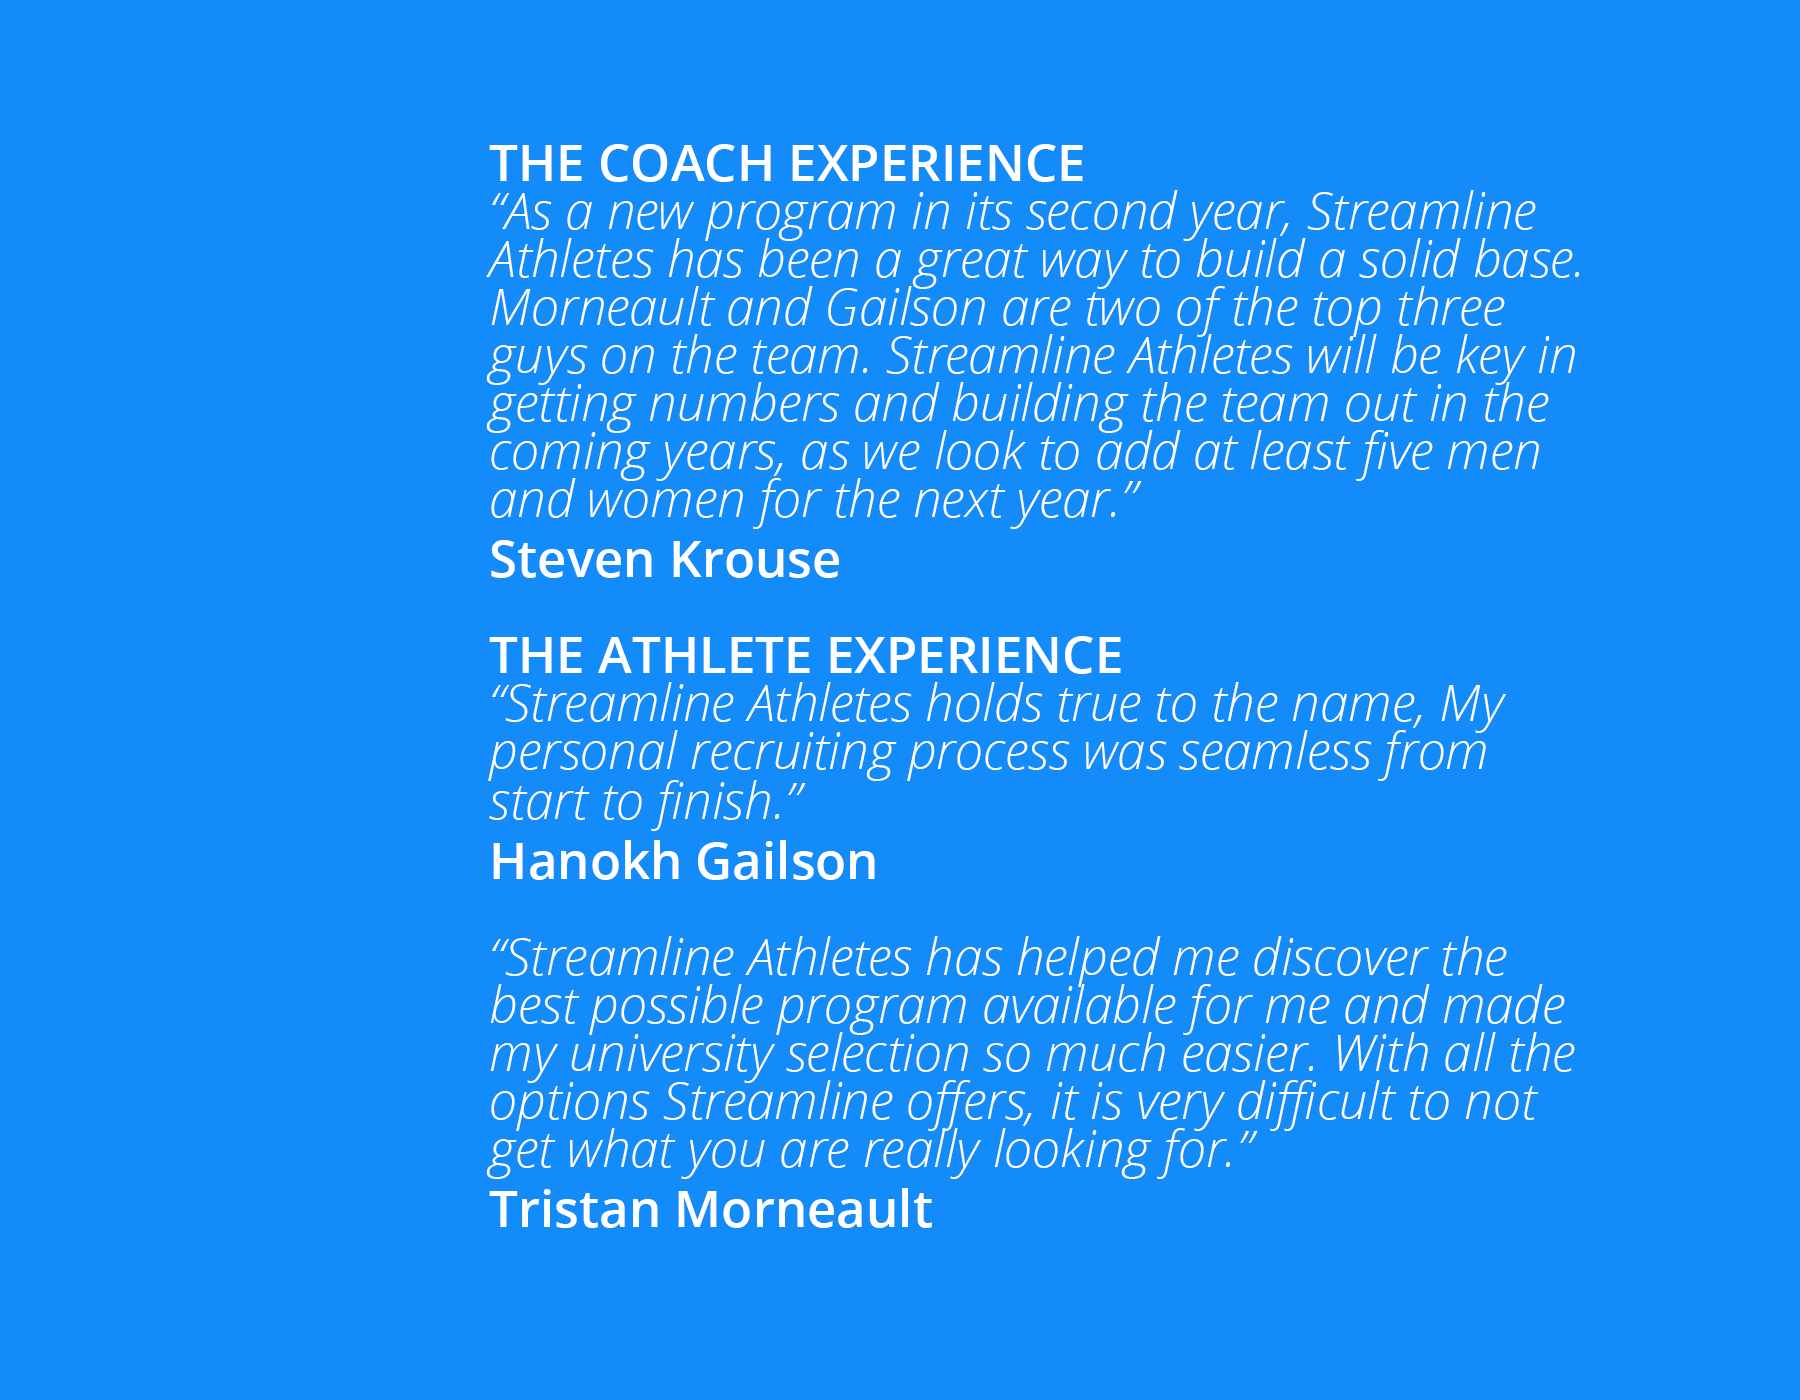 Large image graphic representing the quotes given by Coach Krouse, Athletes Hanohk Gailson and Tristan Morneault